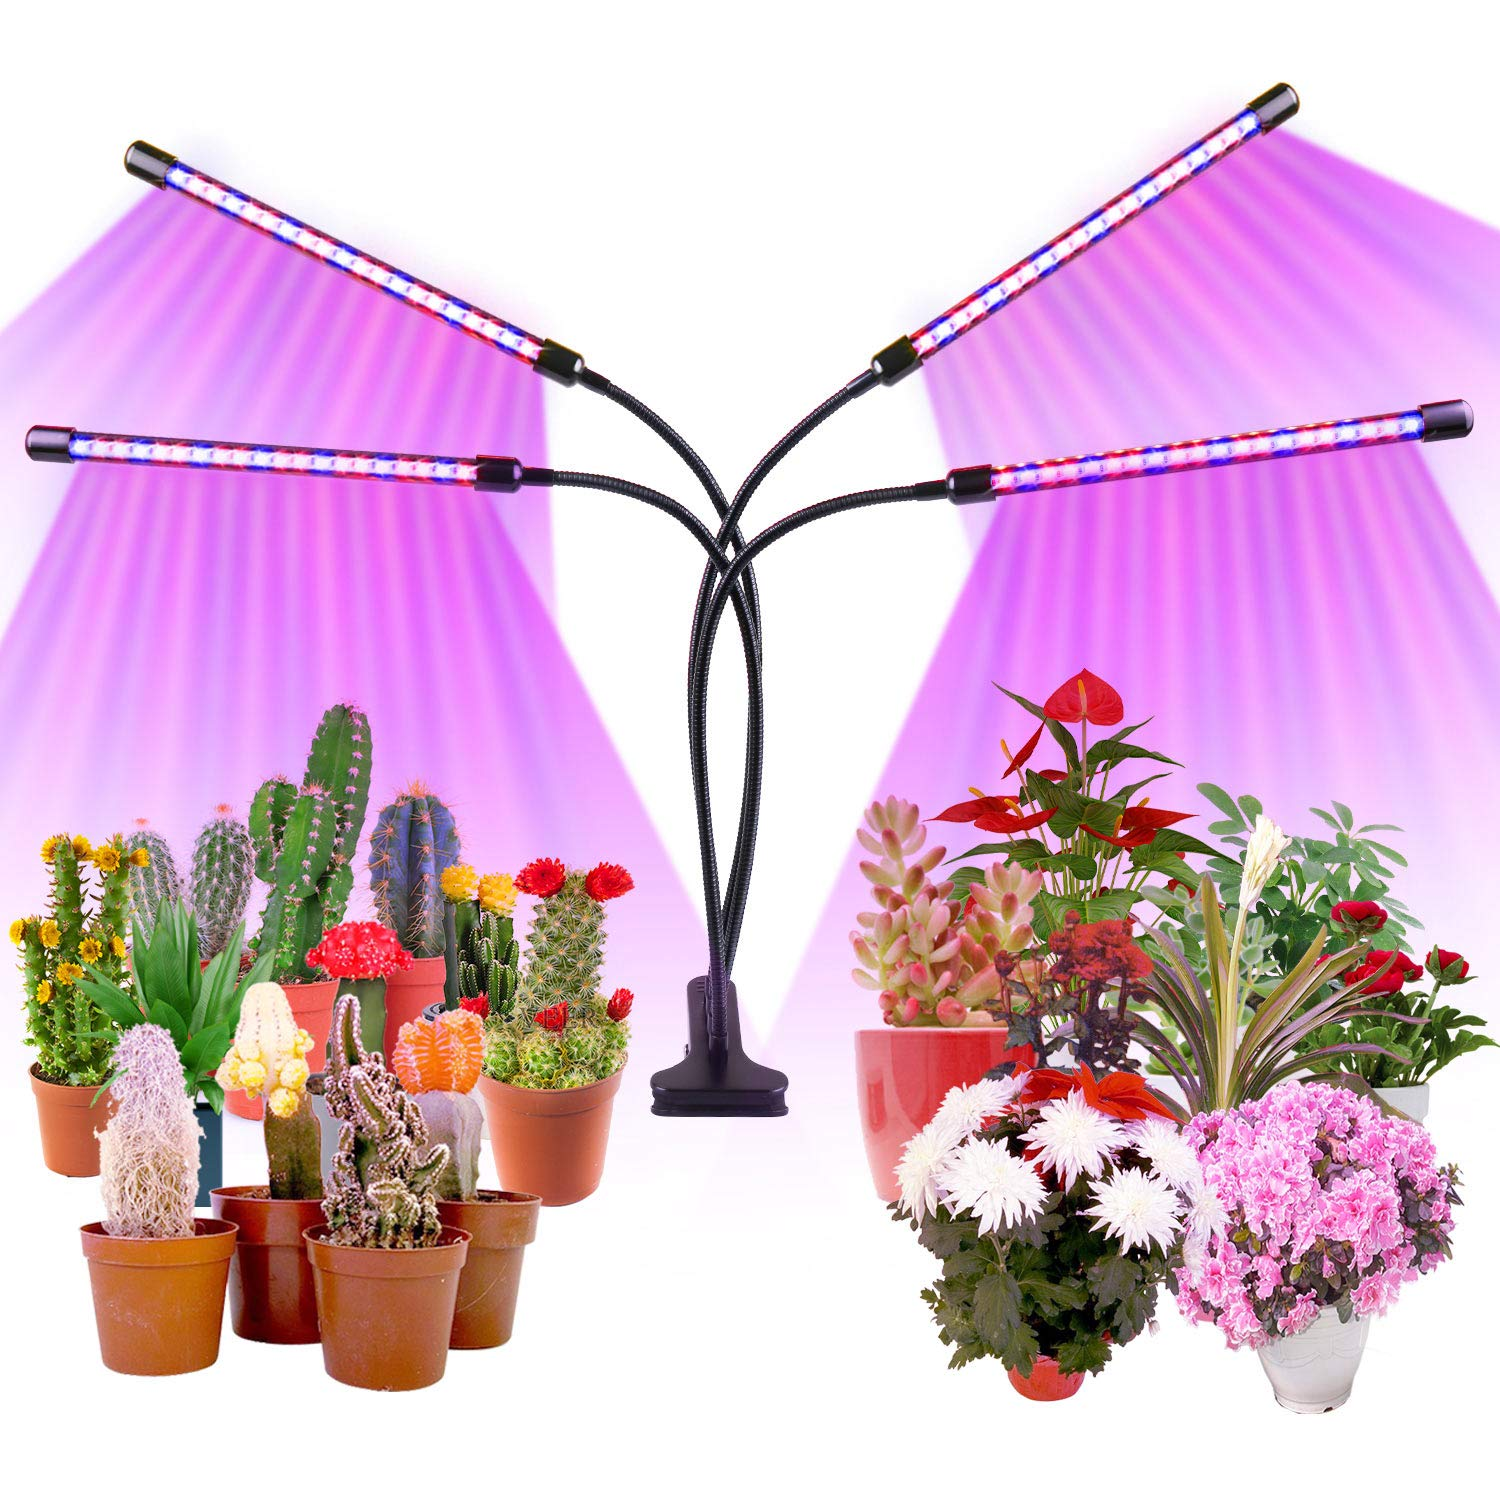 Roleadro Grow Lights for Indoor Plants80W Full Spectrum Plant Lights with Auto